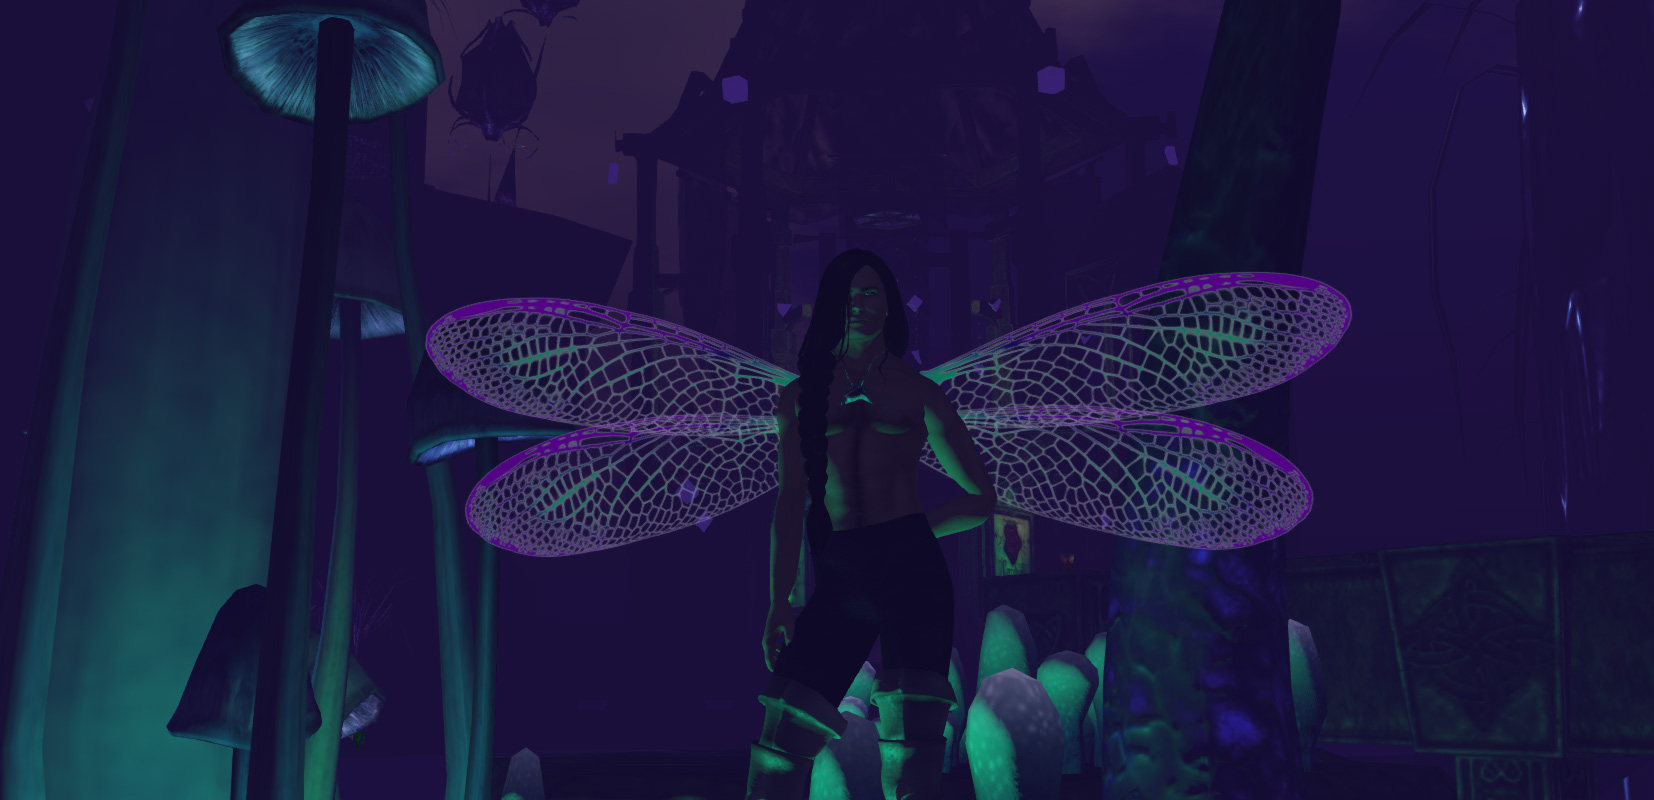 Avatar-Bizarre-May-Fly-Wings